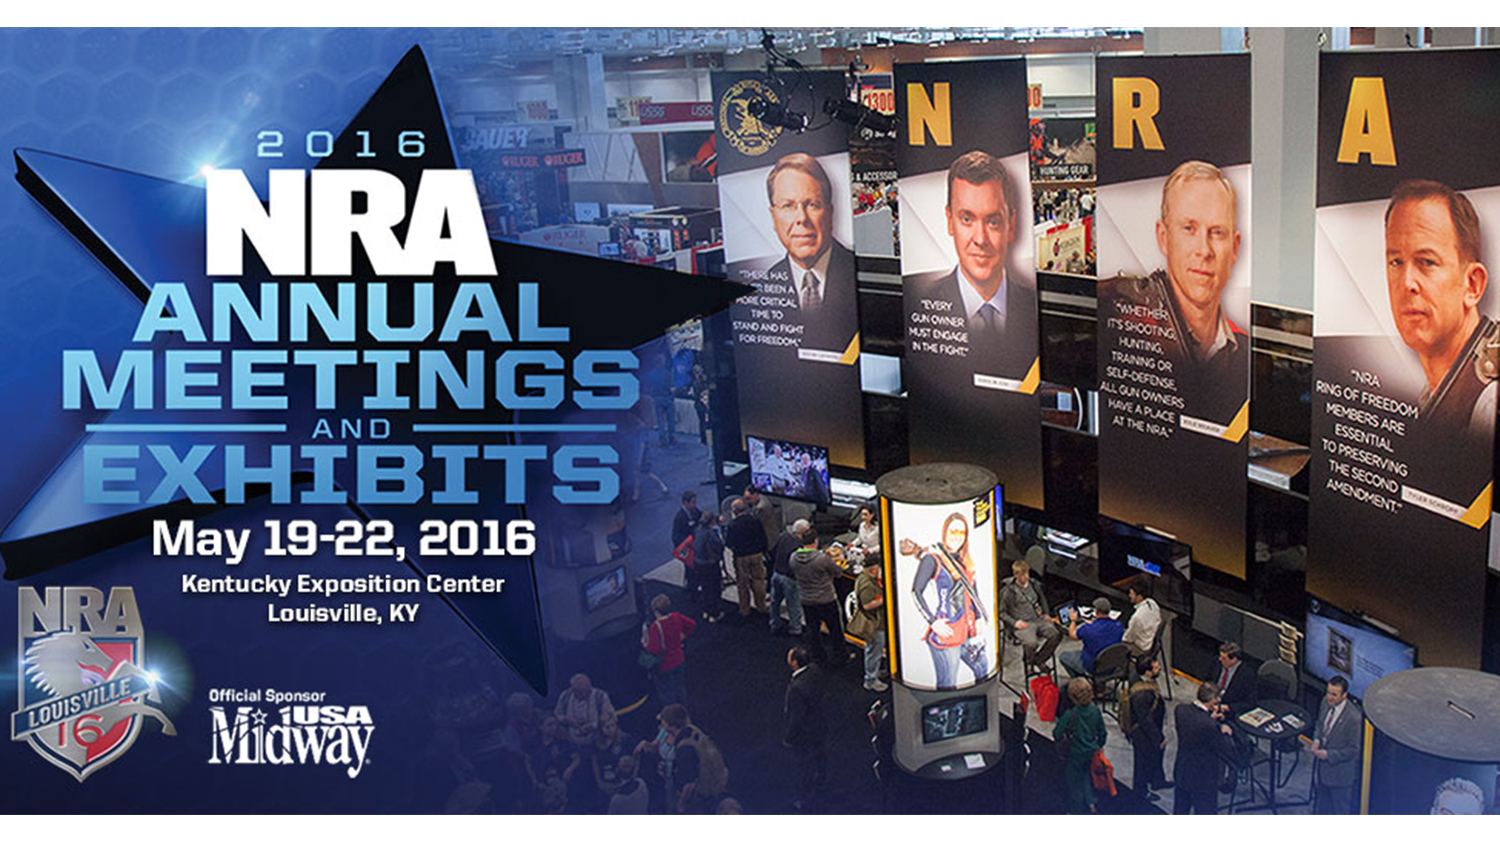 NRA Annual Meeting Events: Friday May 20th